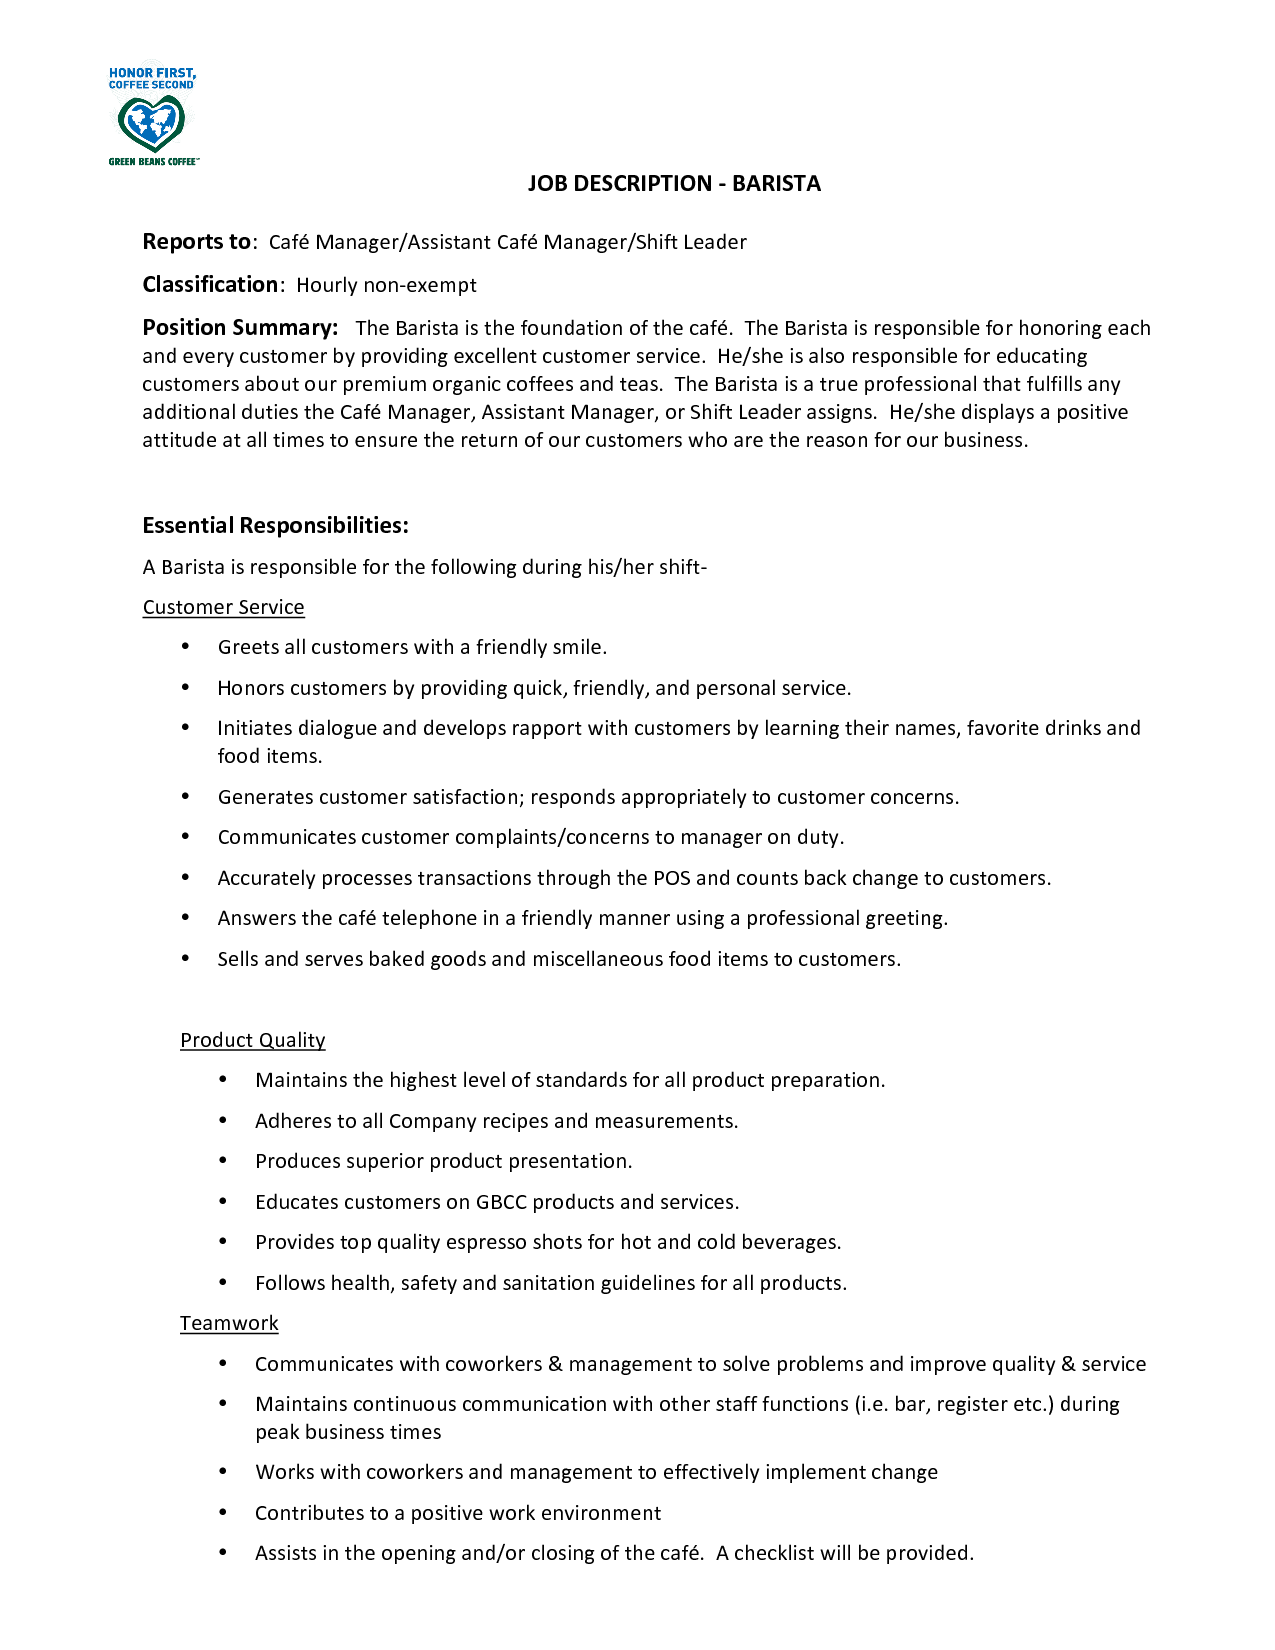 barista job description head barista job description